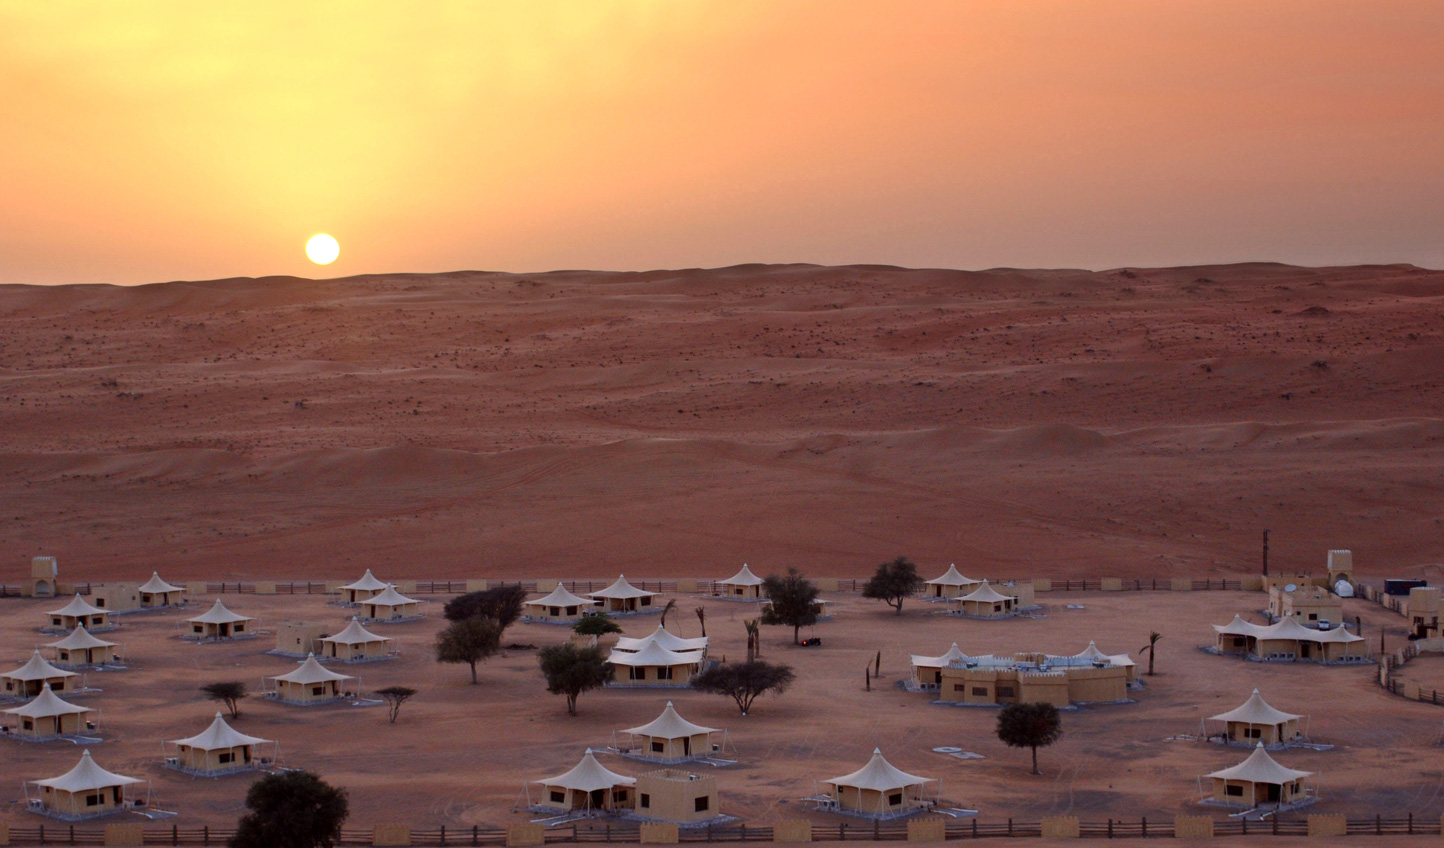 Seemingly in the midst of nowhere, find your home at the Desert Luxury Camp